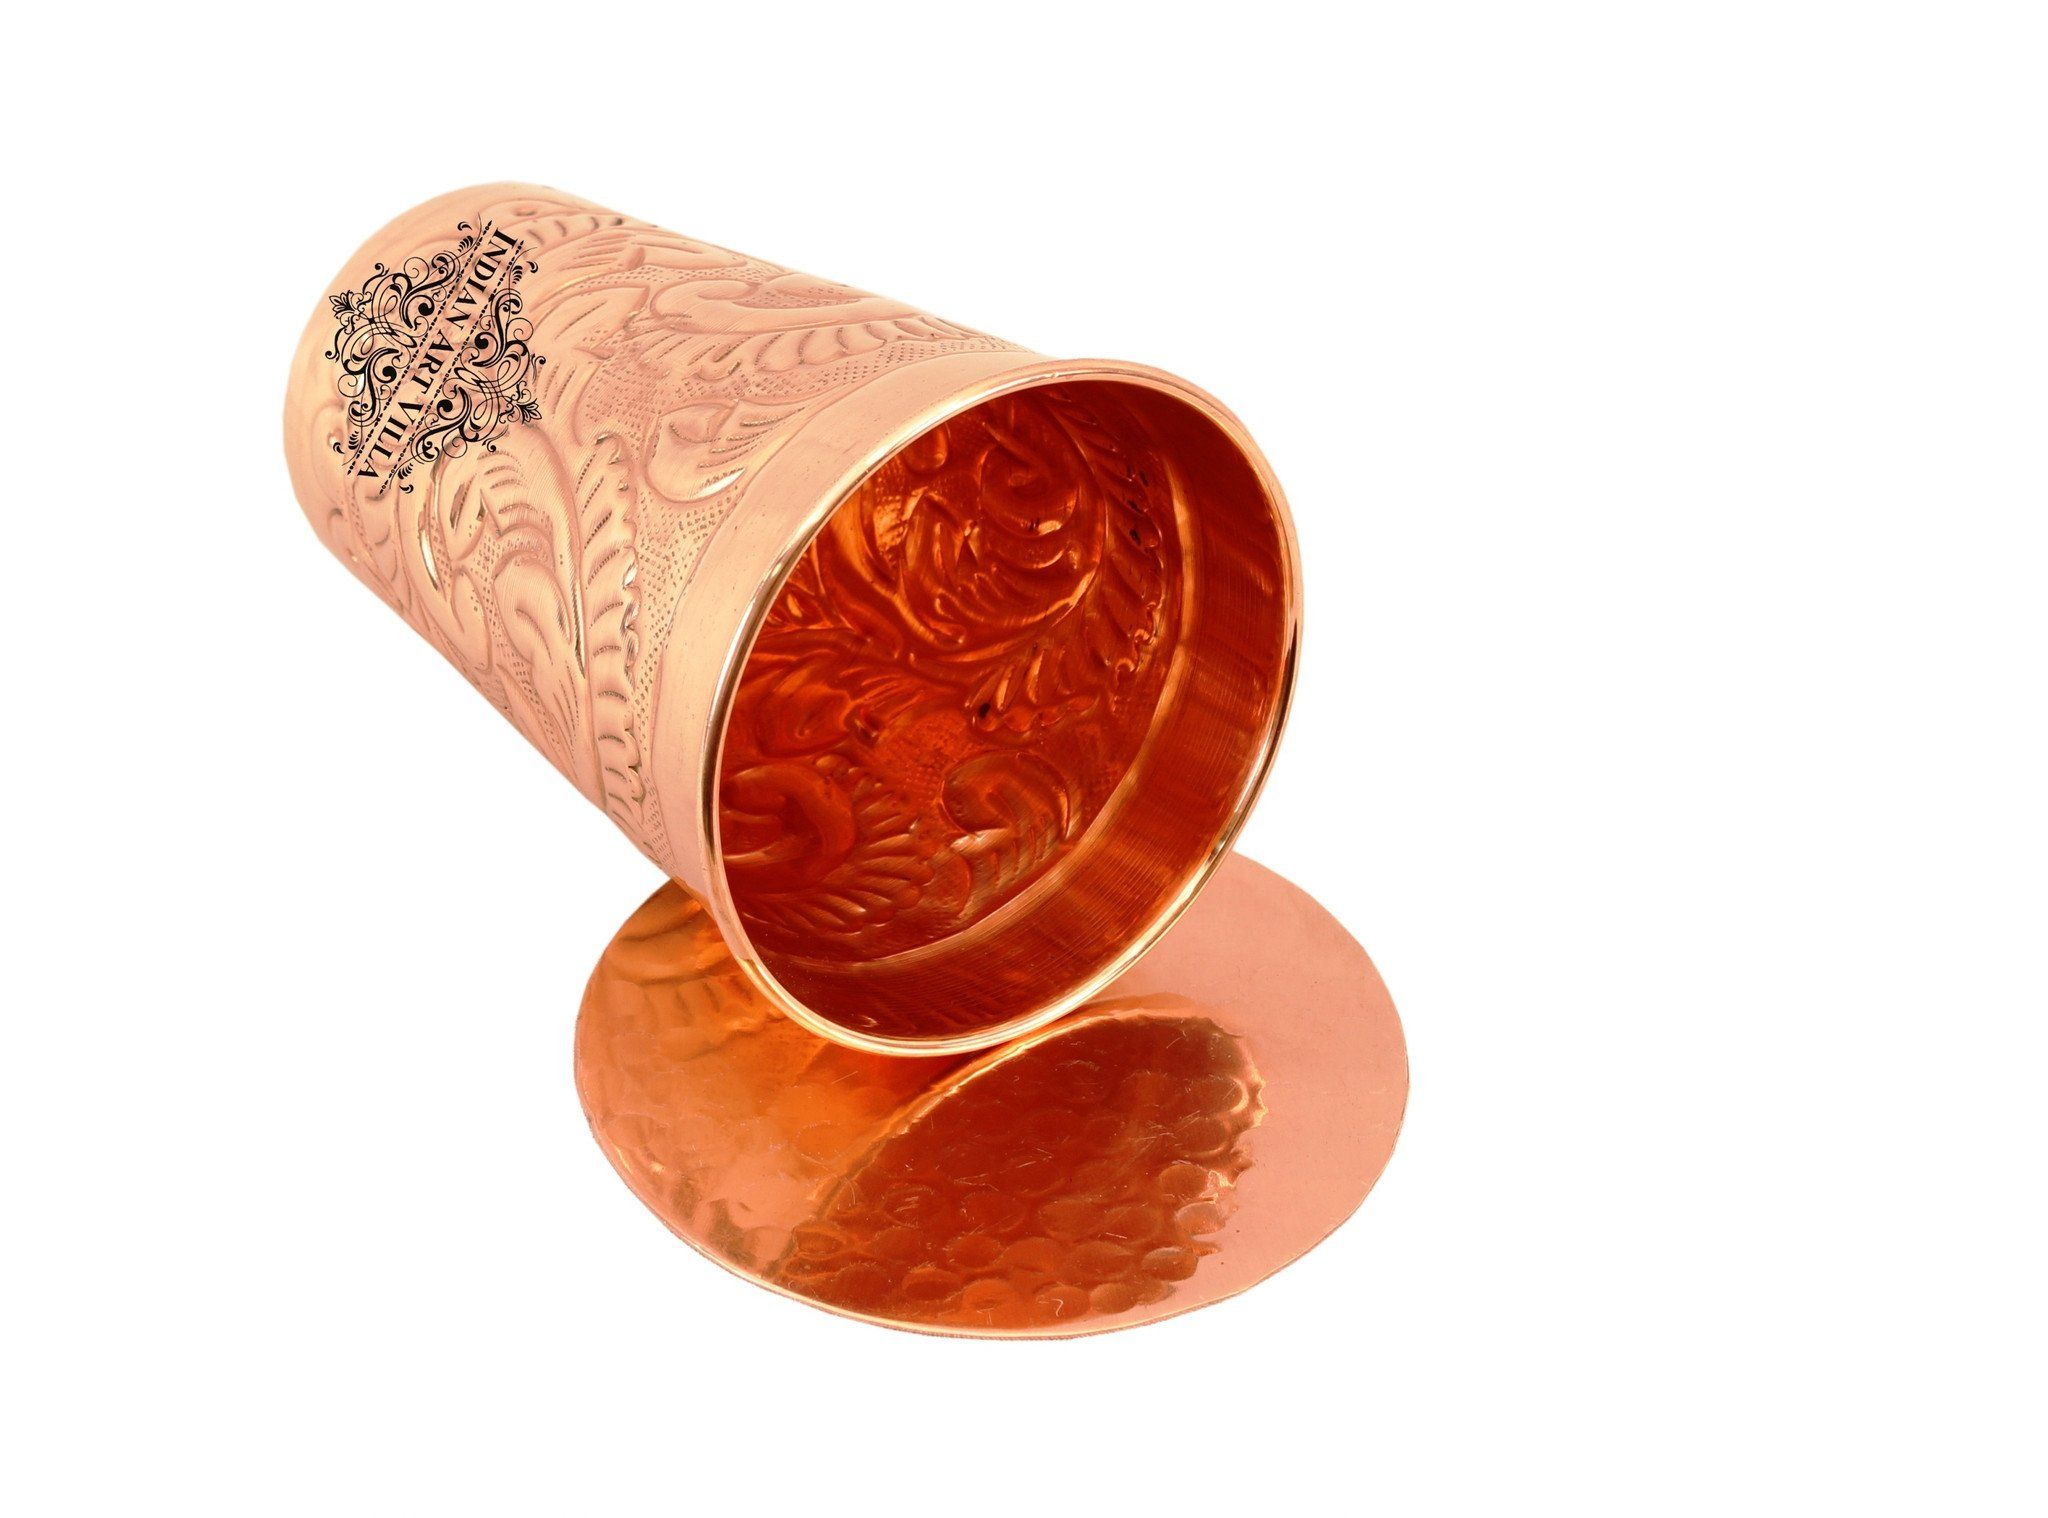 Pure Copper Engraved Flower Design Glass with Coaster 11 Oz